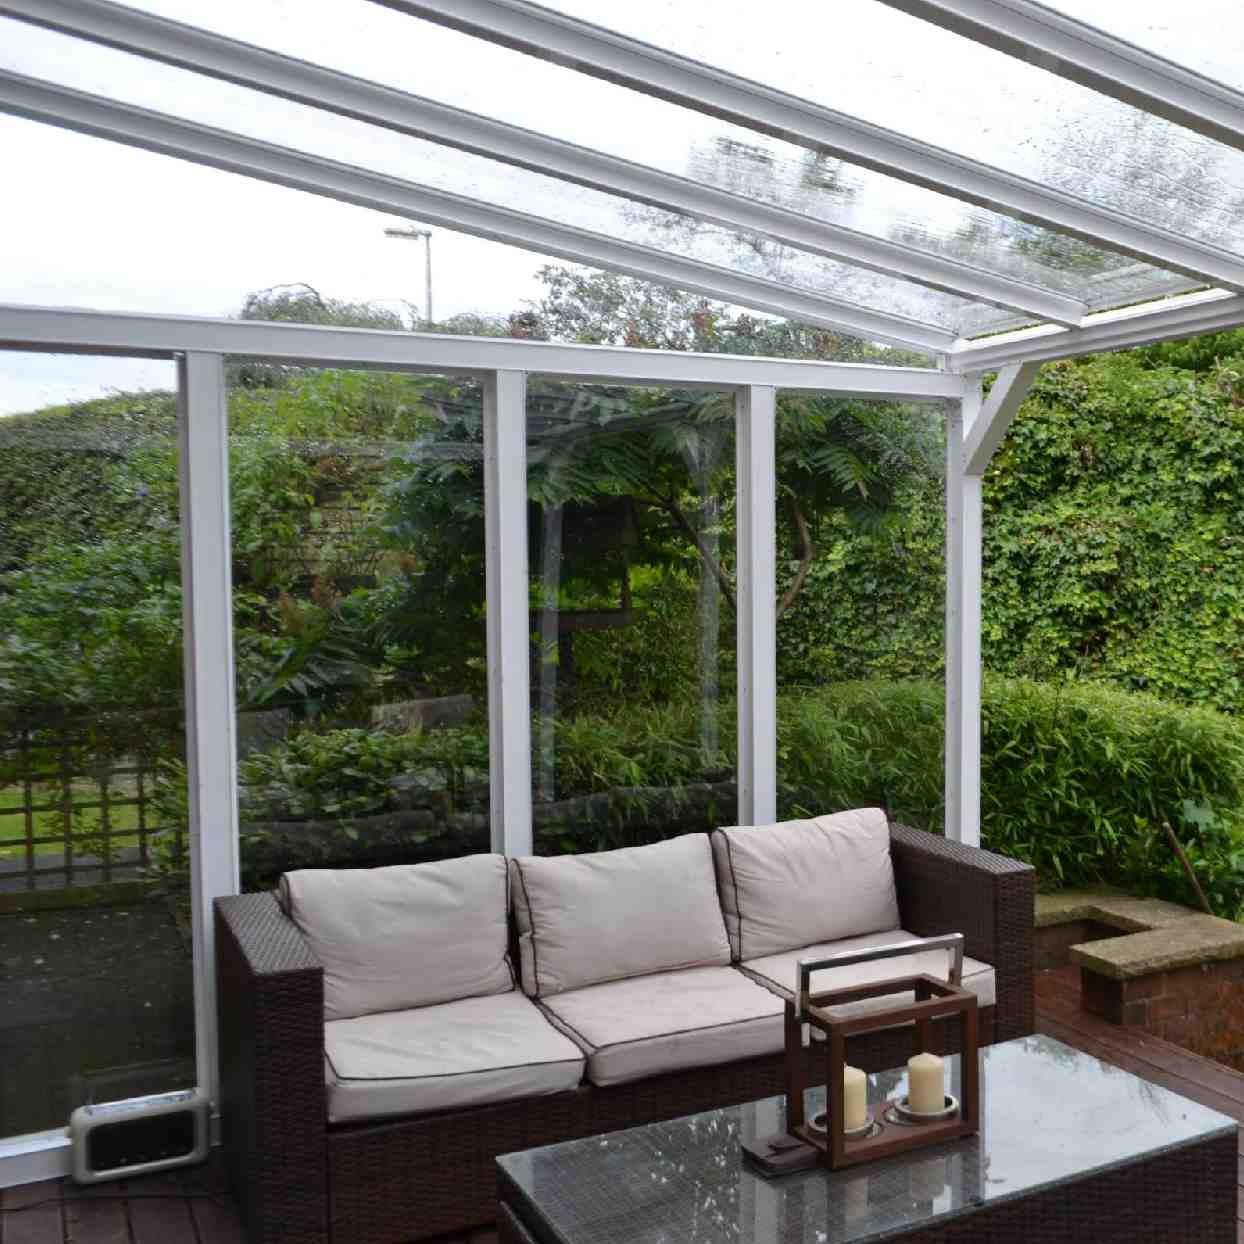 Buy Omega Verandah with 6mm Glass Clear Plate Polycarbonate Glazing - 4.9m (W) x 3.0m (P), (3) Supporting Posts online today